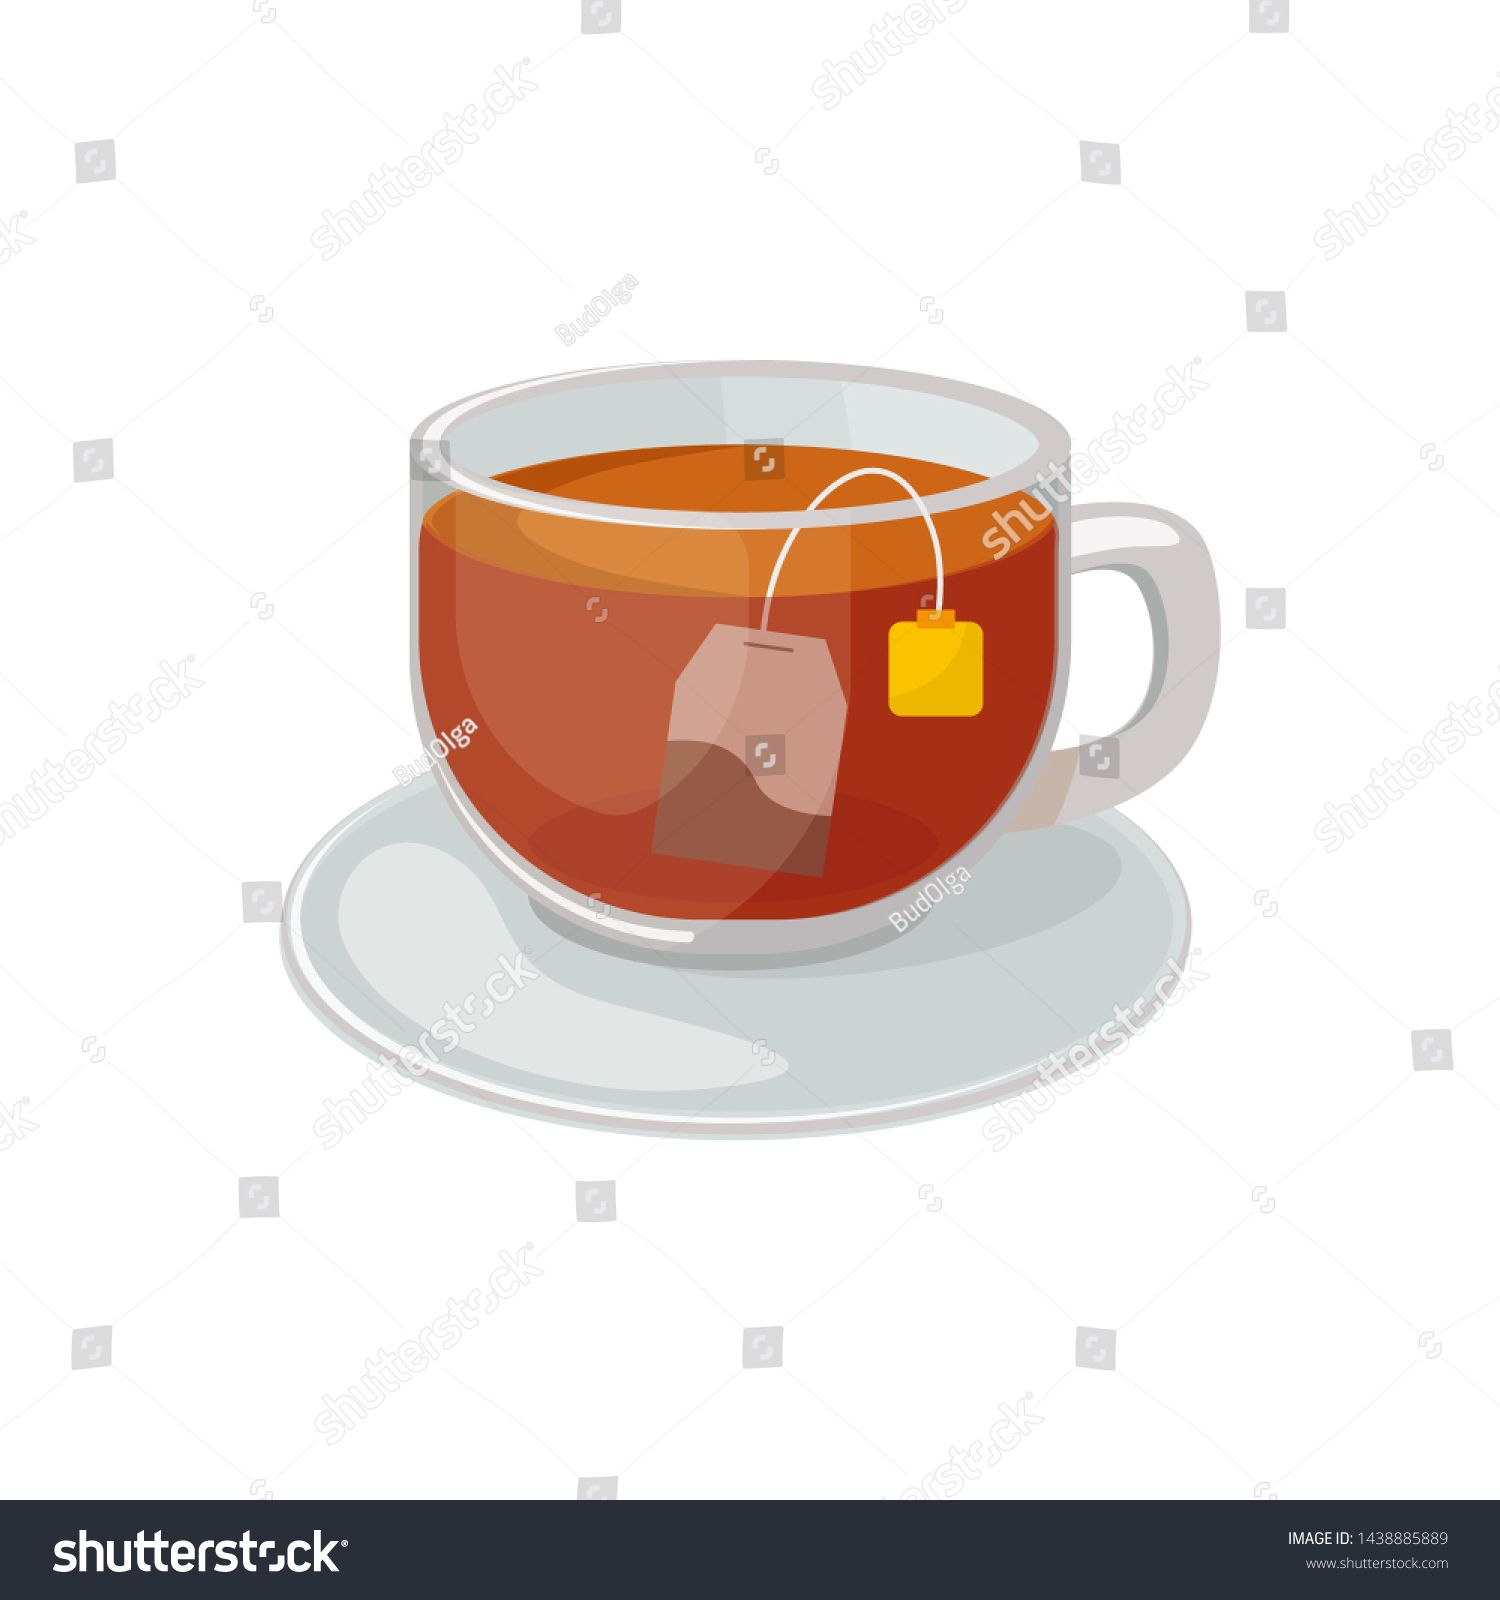 glass cup with saucer with black tea and tea bag inside vector illustration isolated on white background hot black tea vector sponsor glass cup black tea tea glass cup with saucer with black tea